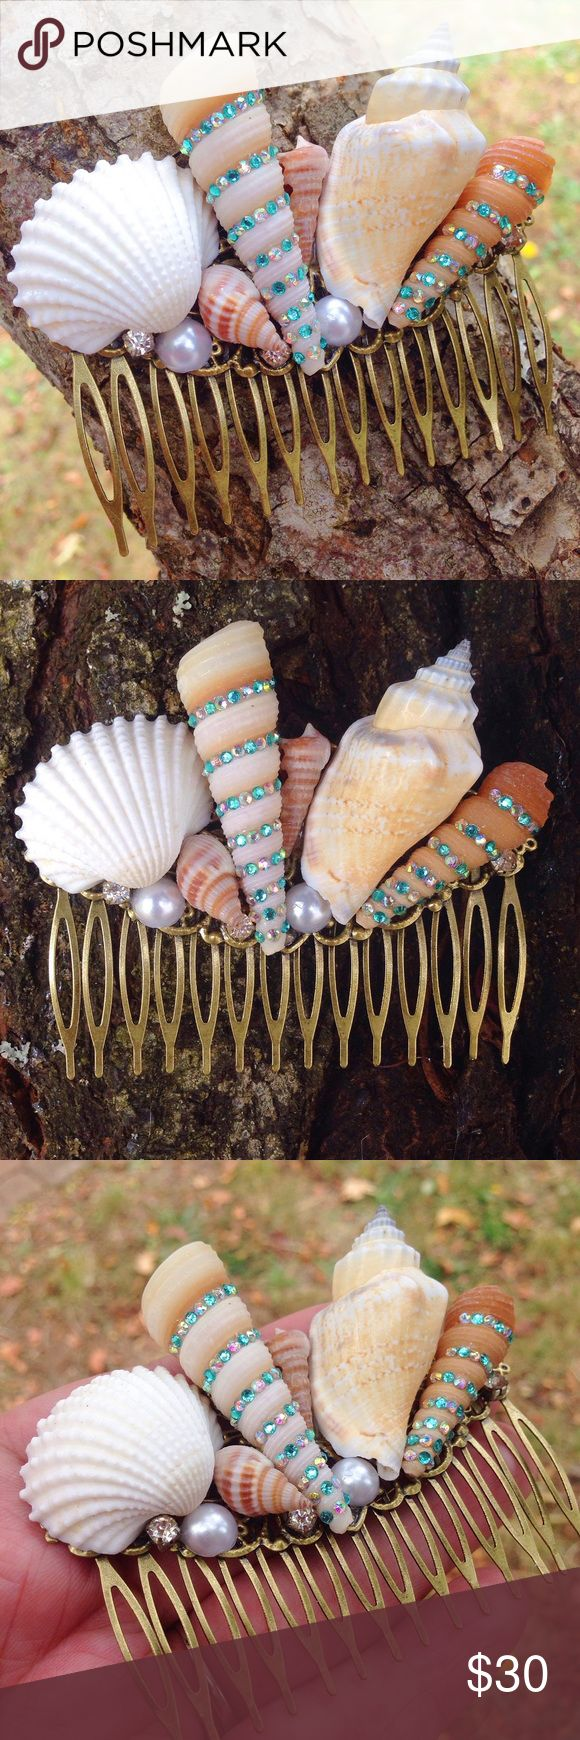 """Handmade seashell hair comb/mermaid/boho/gypsy An Abbie's Anchor Original-This hair comb is made from seashells from the Oregon Coast. Spiral shells are decorated with iridescent gems. You will find a few rhinestones & faux pearl beads hiding amongst the shells-Comb is made from brass filigree and measures 3 1/2"""" across X 2 3/4"""" tall. COMB IS MADE TO ORDER-please allow 3 days to ship. Each comb slightly differs as each shell is unique, I do my best to make it look almost identical to the…"""